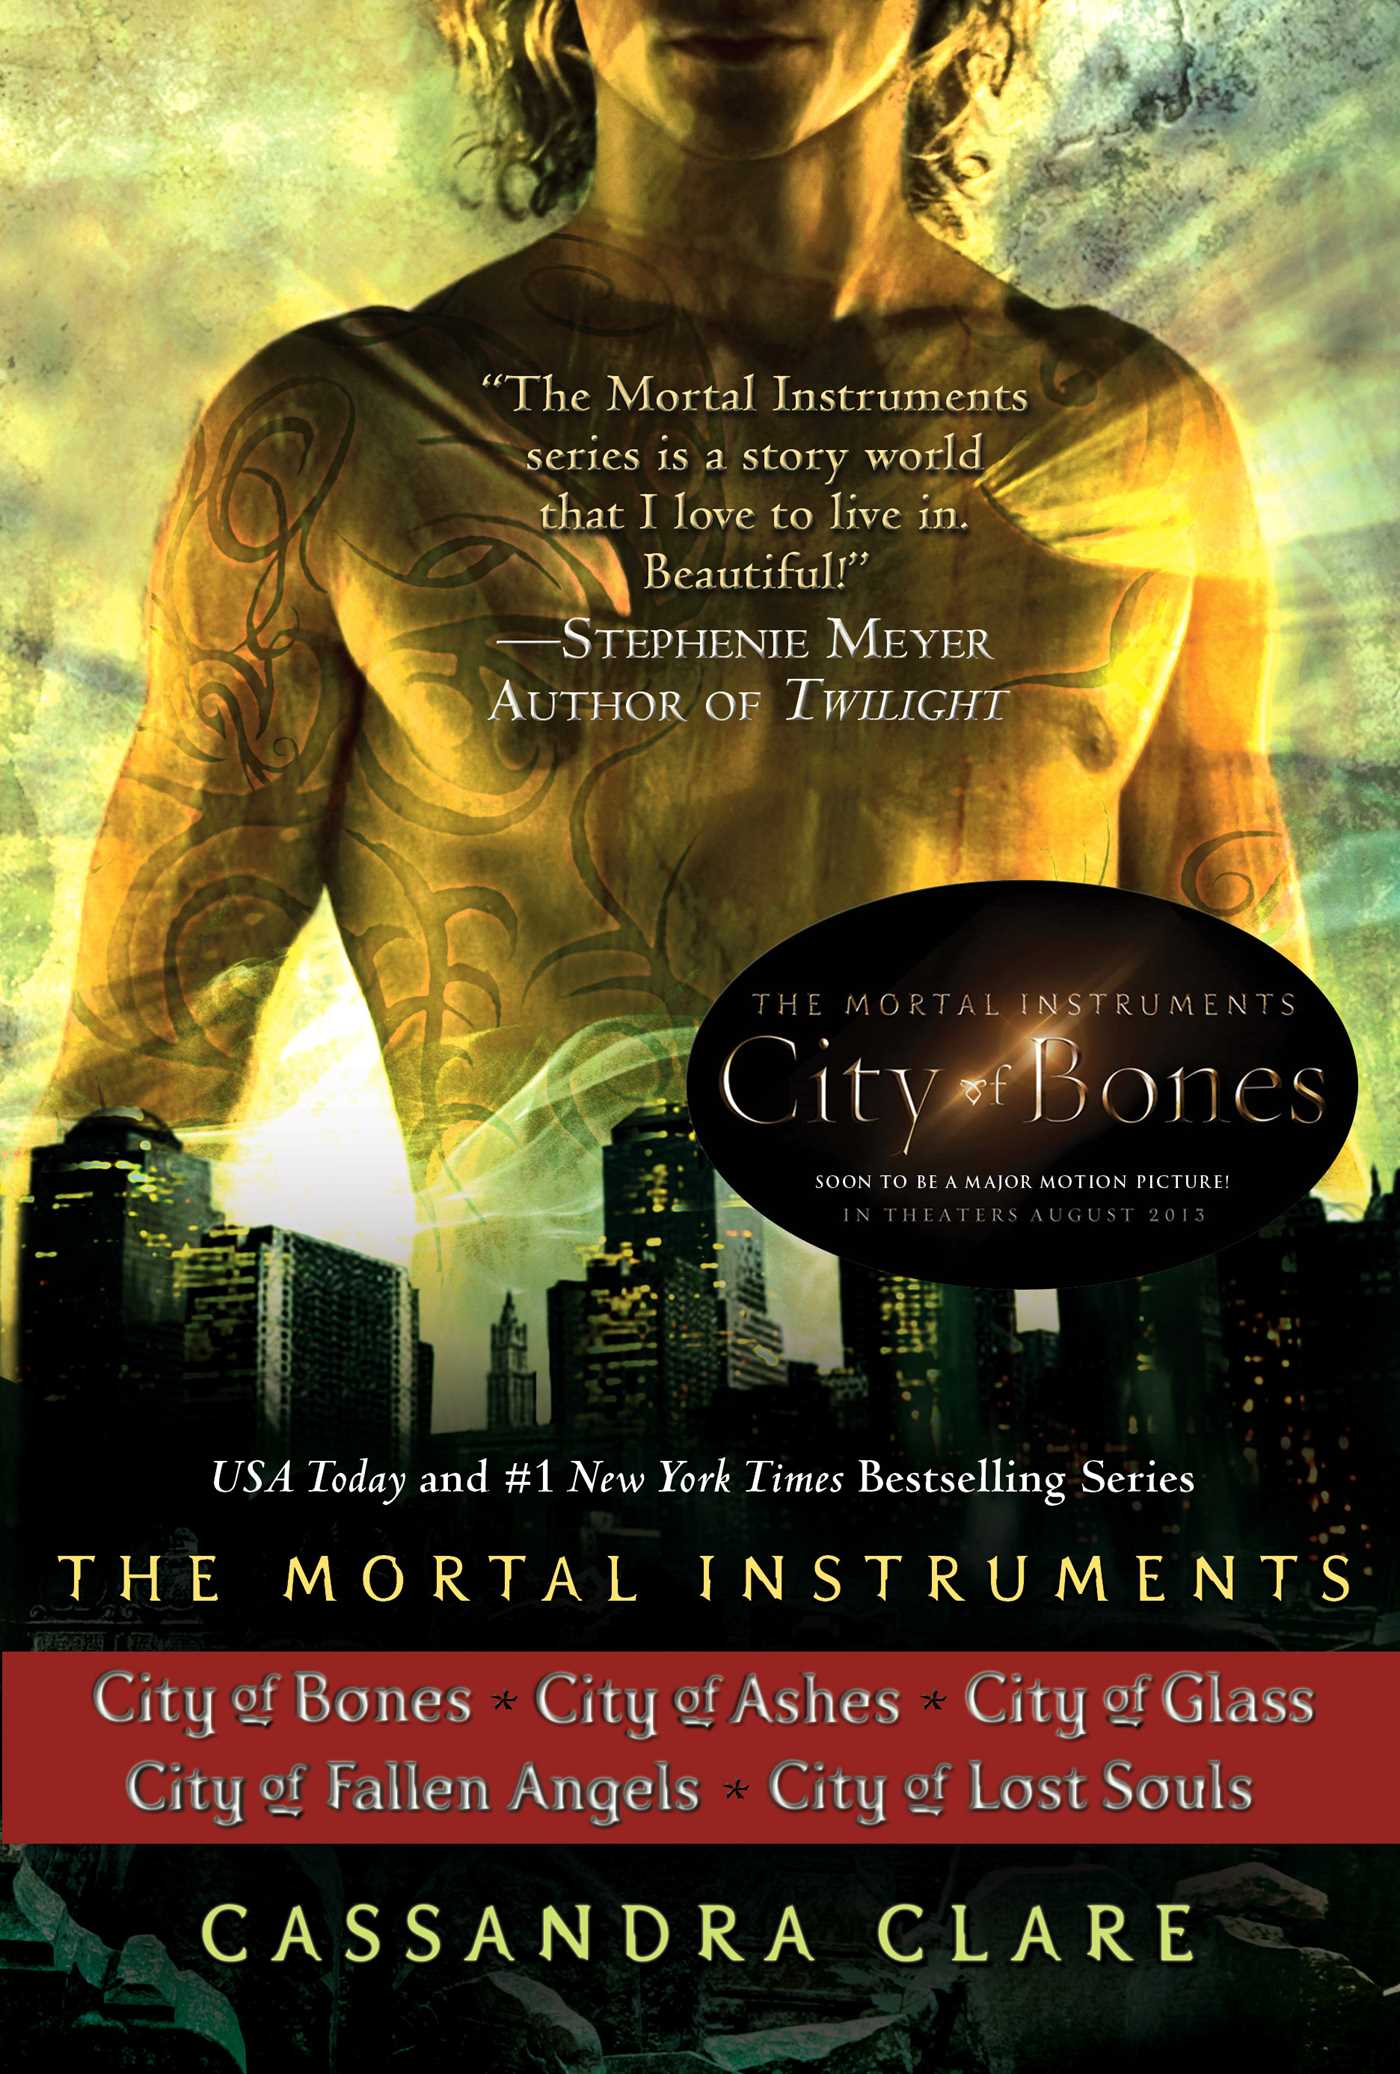 Cassandra-clare-the-mortal-instruments-series-5-books-9781442481015_hr